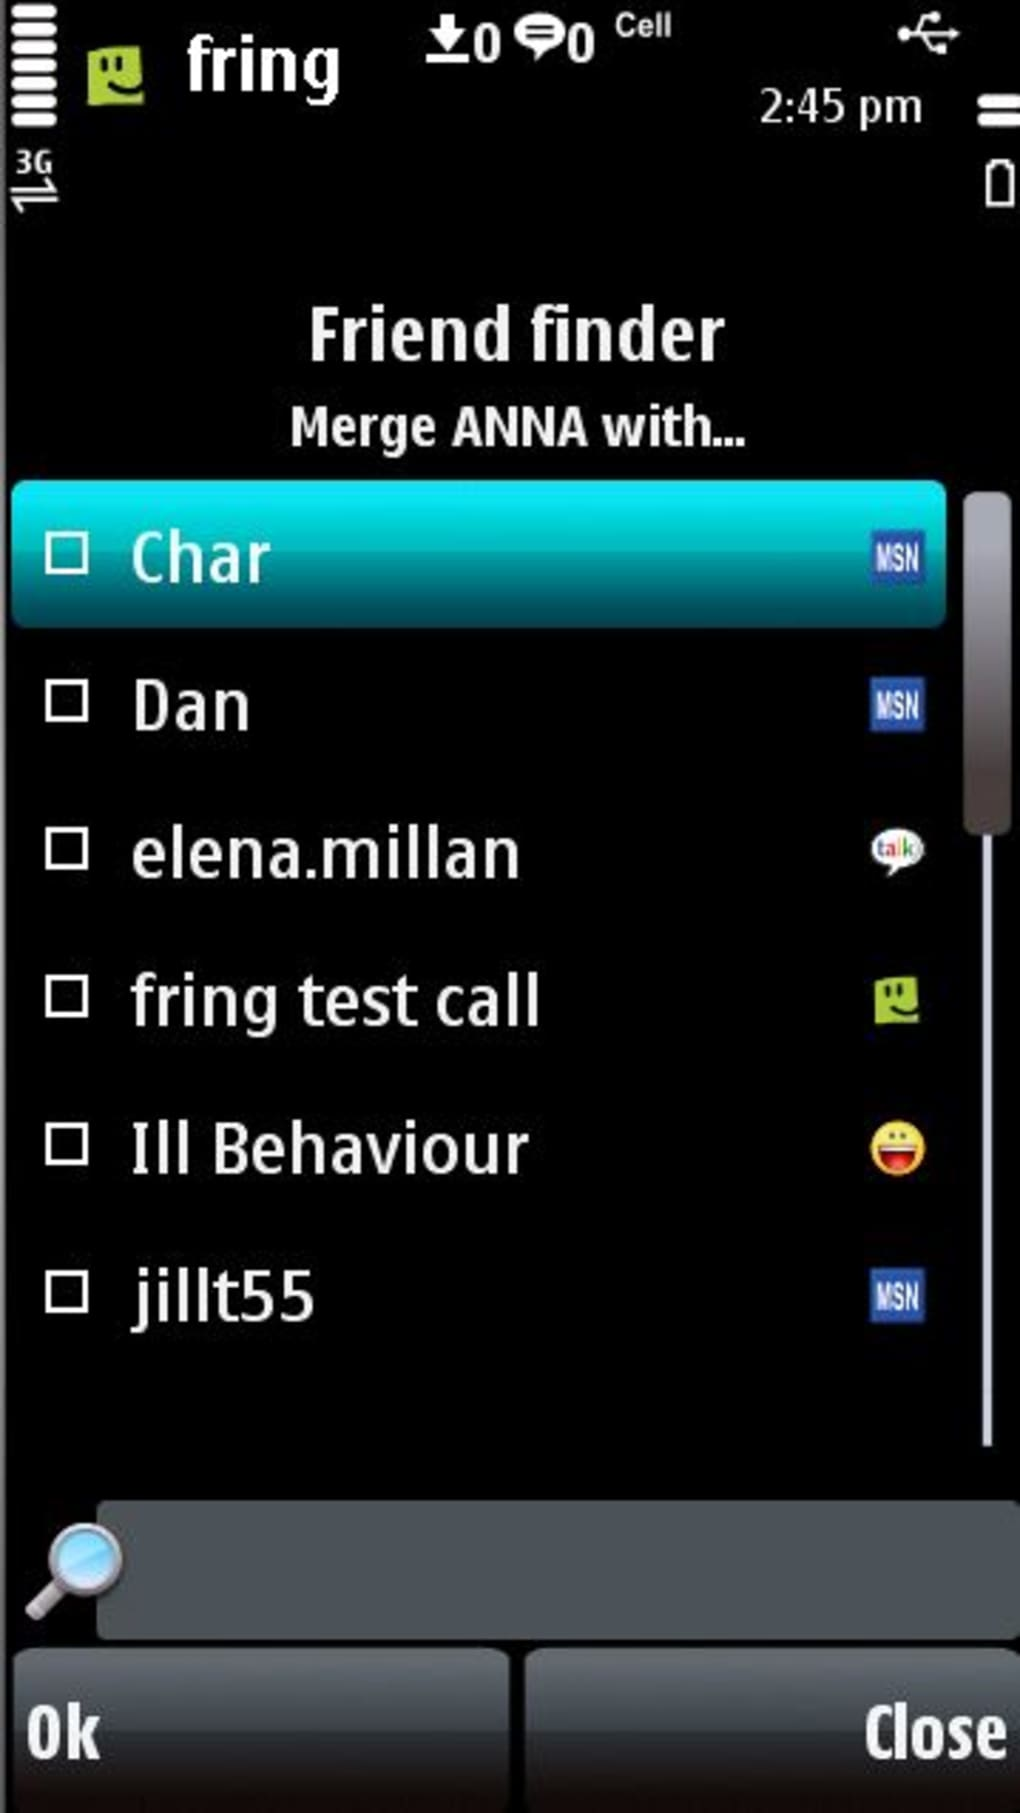 Download fring 5800 early access nokia s60 5th edition.